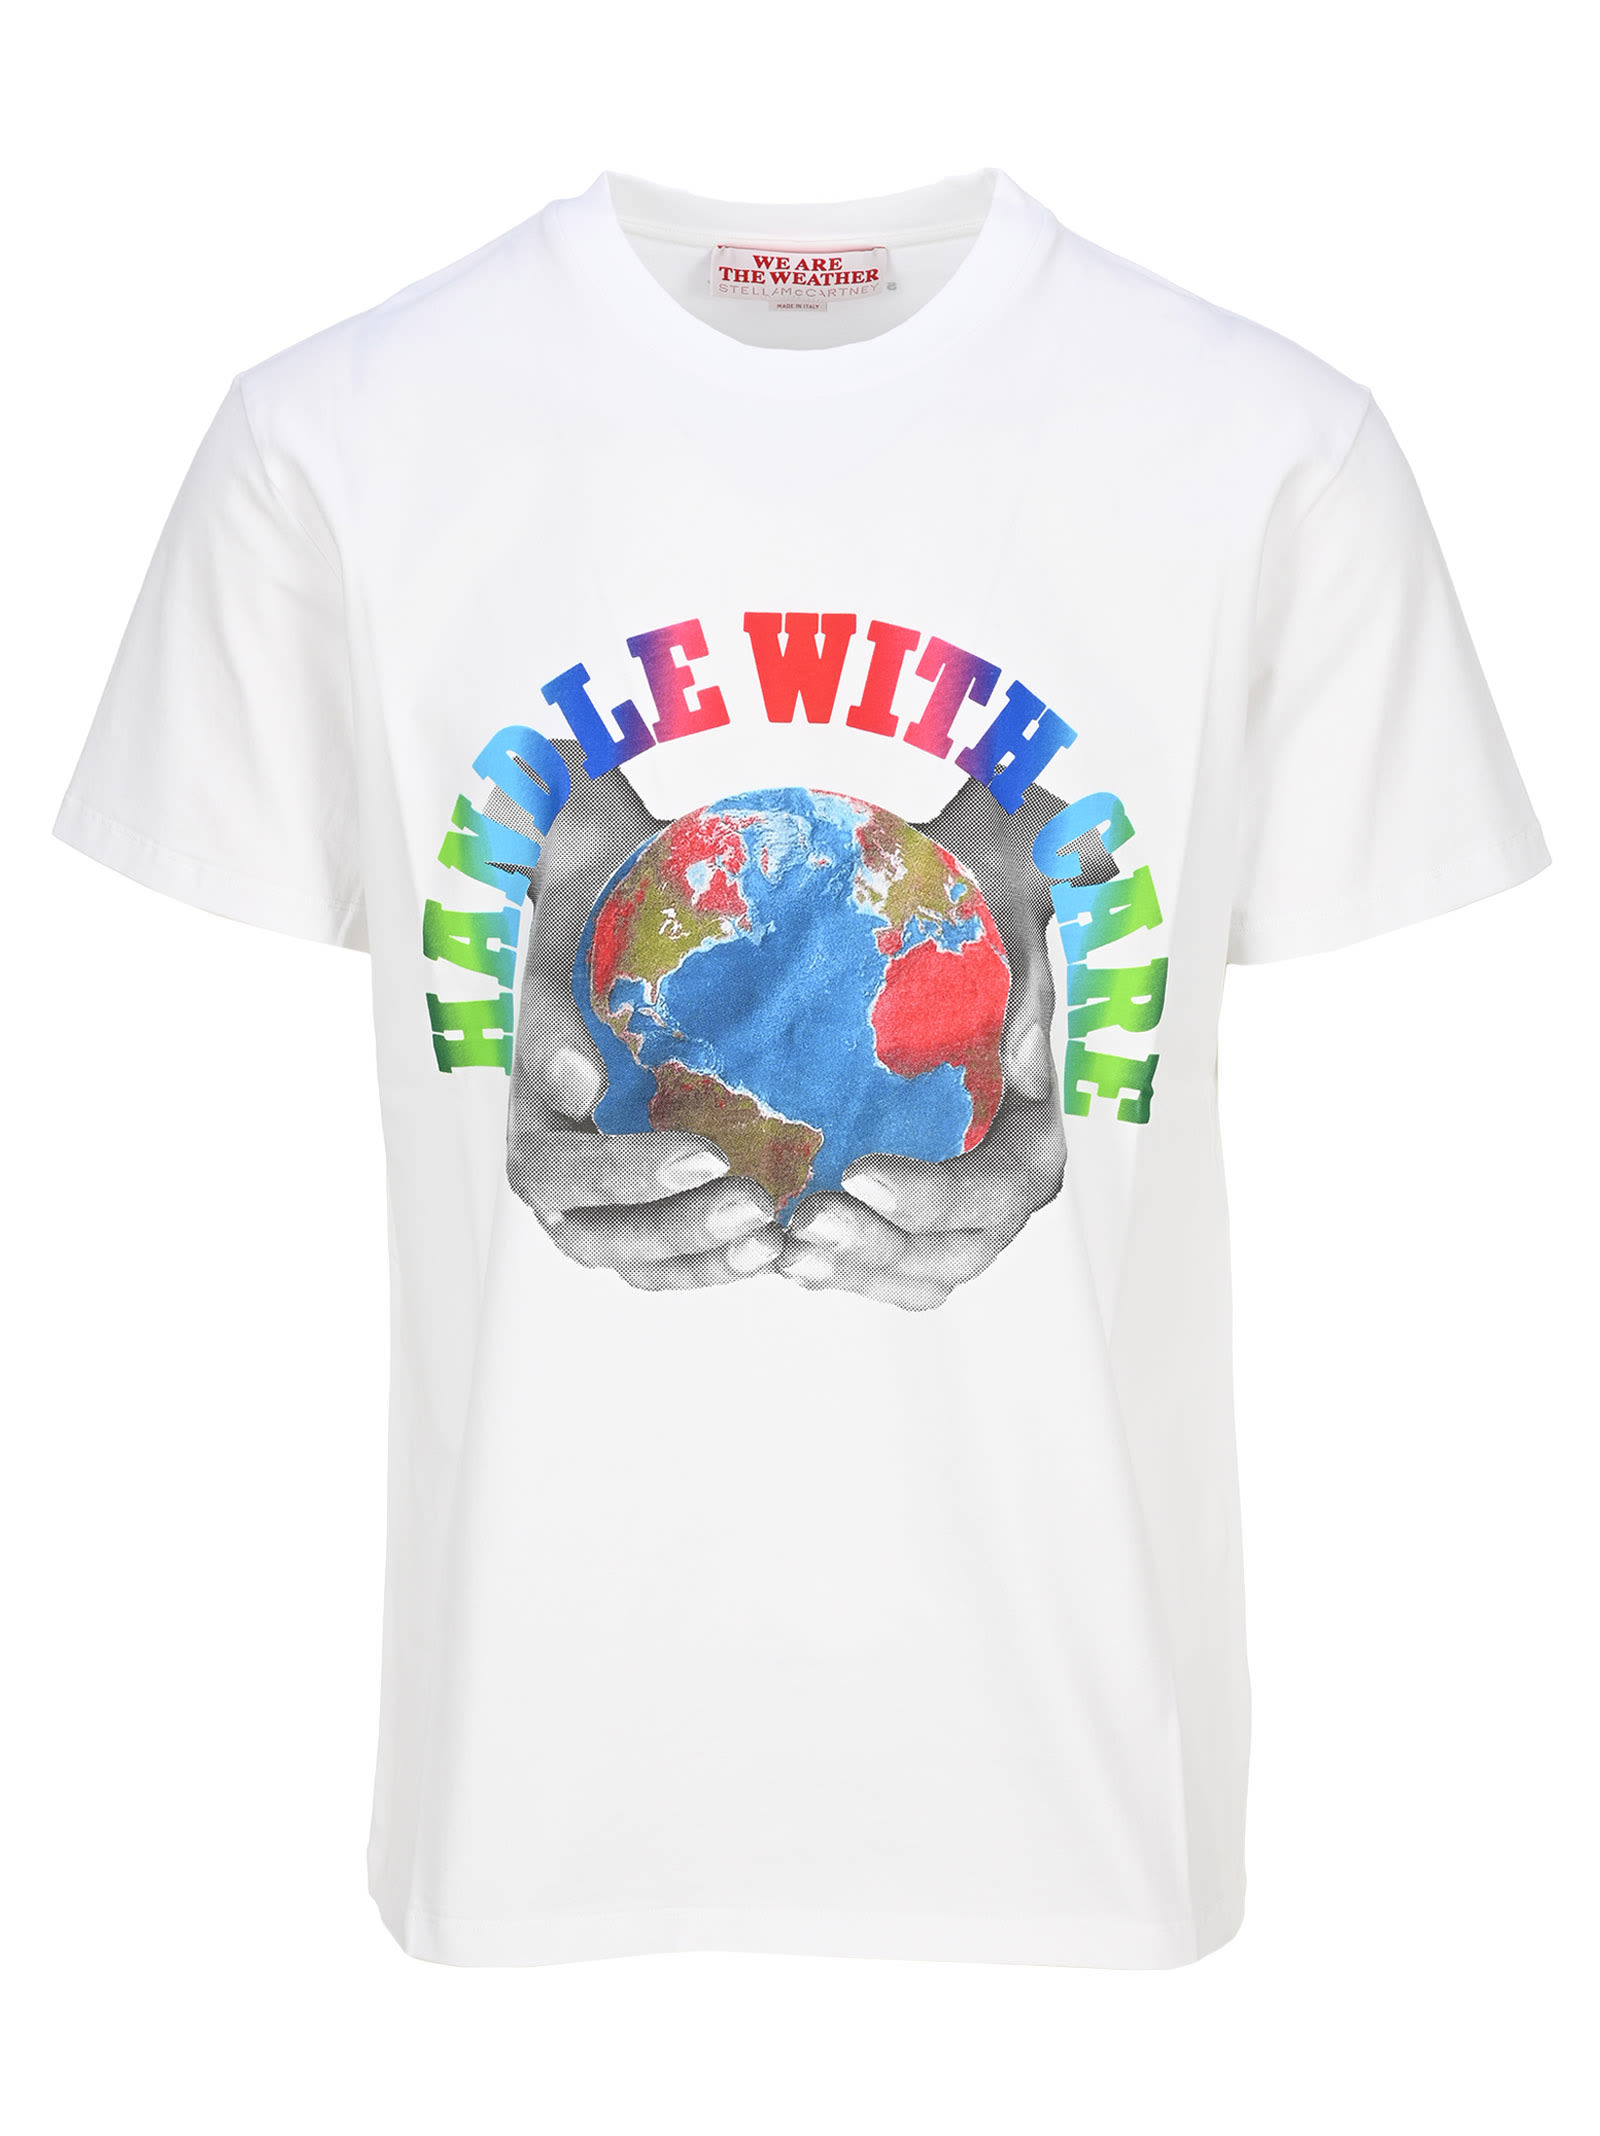 Stella Mccartney handle With Care T-shirt